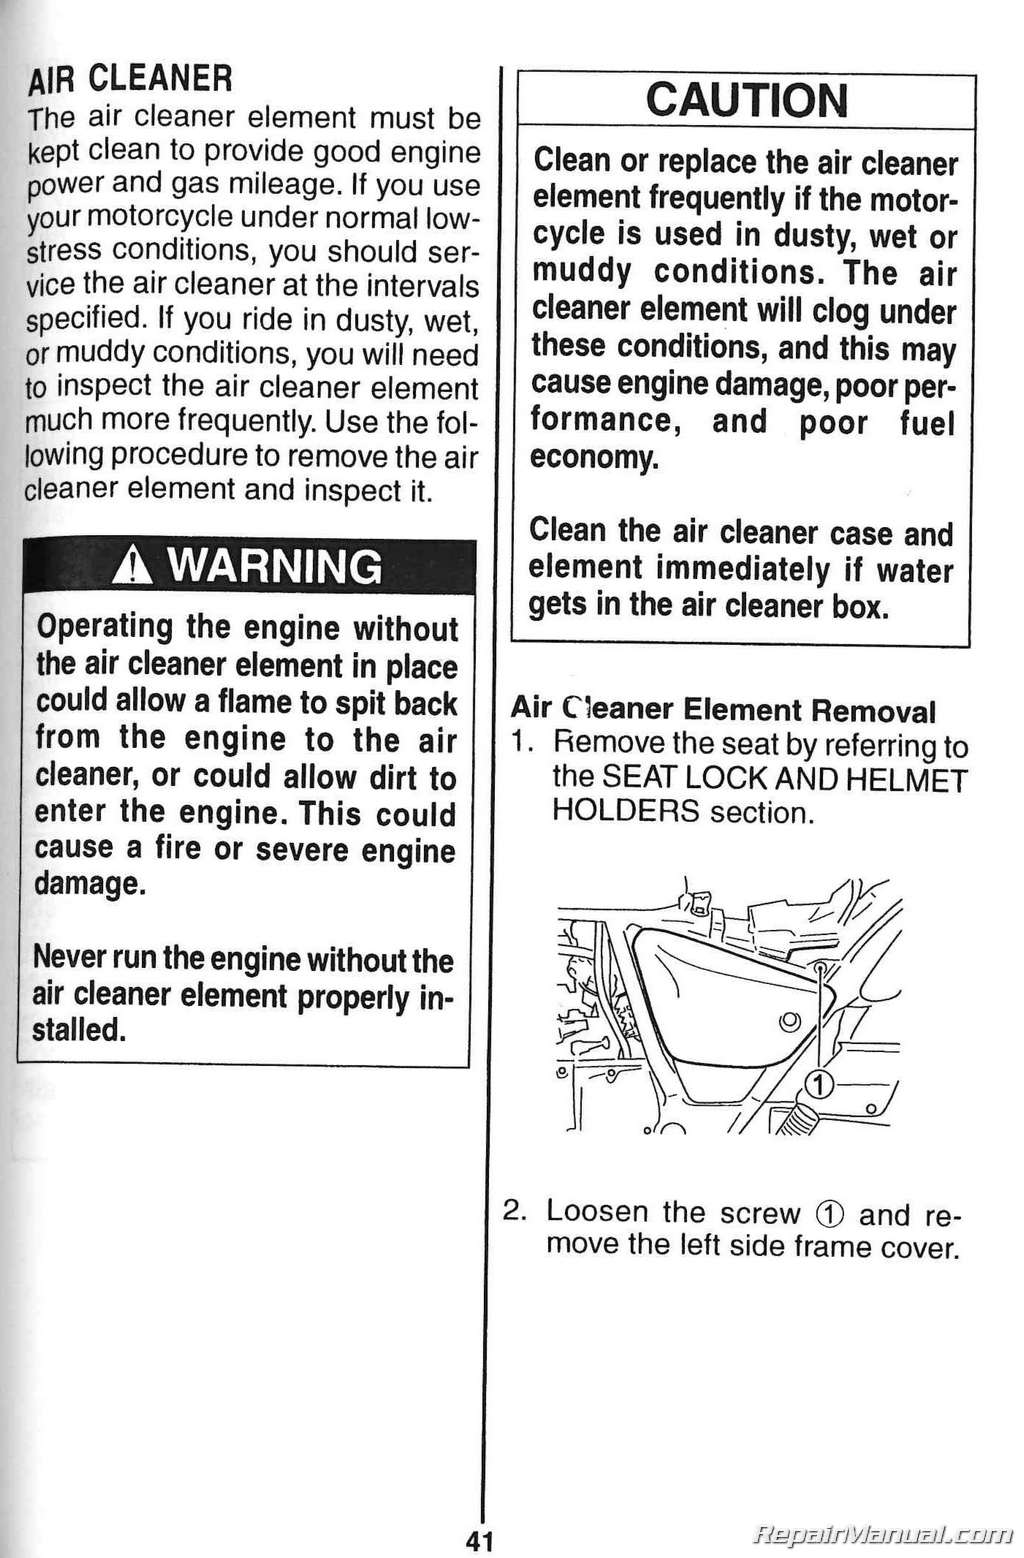 2009 Suzuki Gz250 Owners Manual